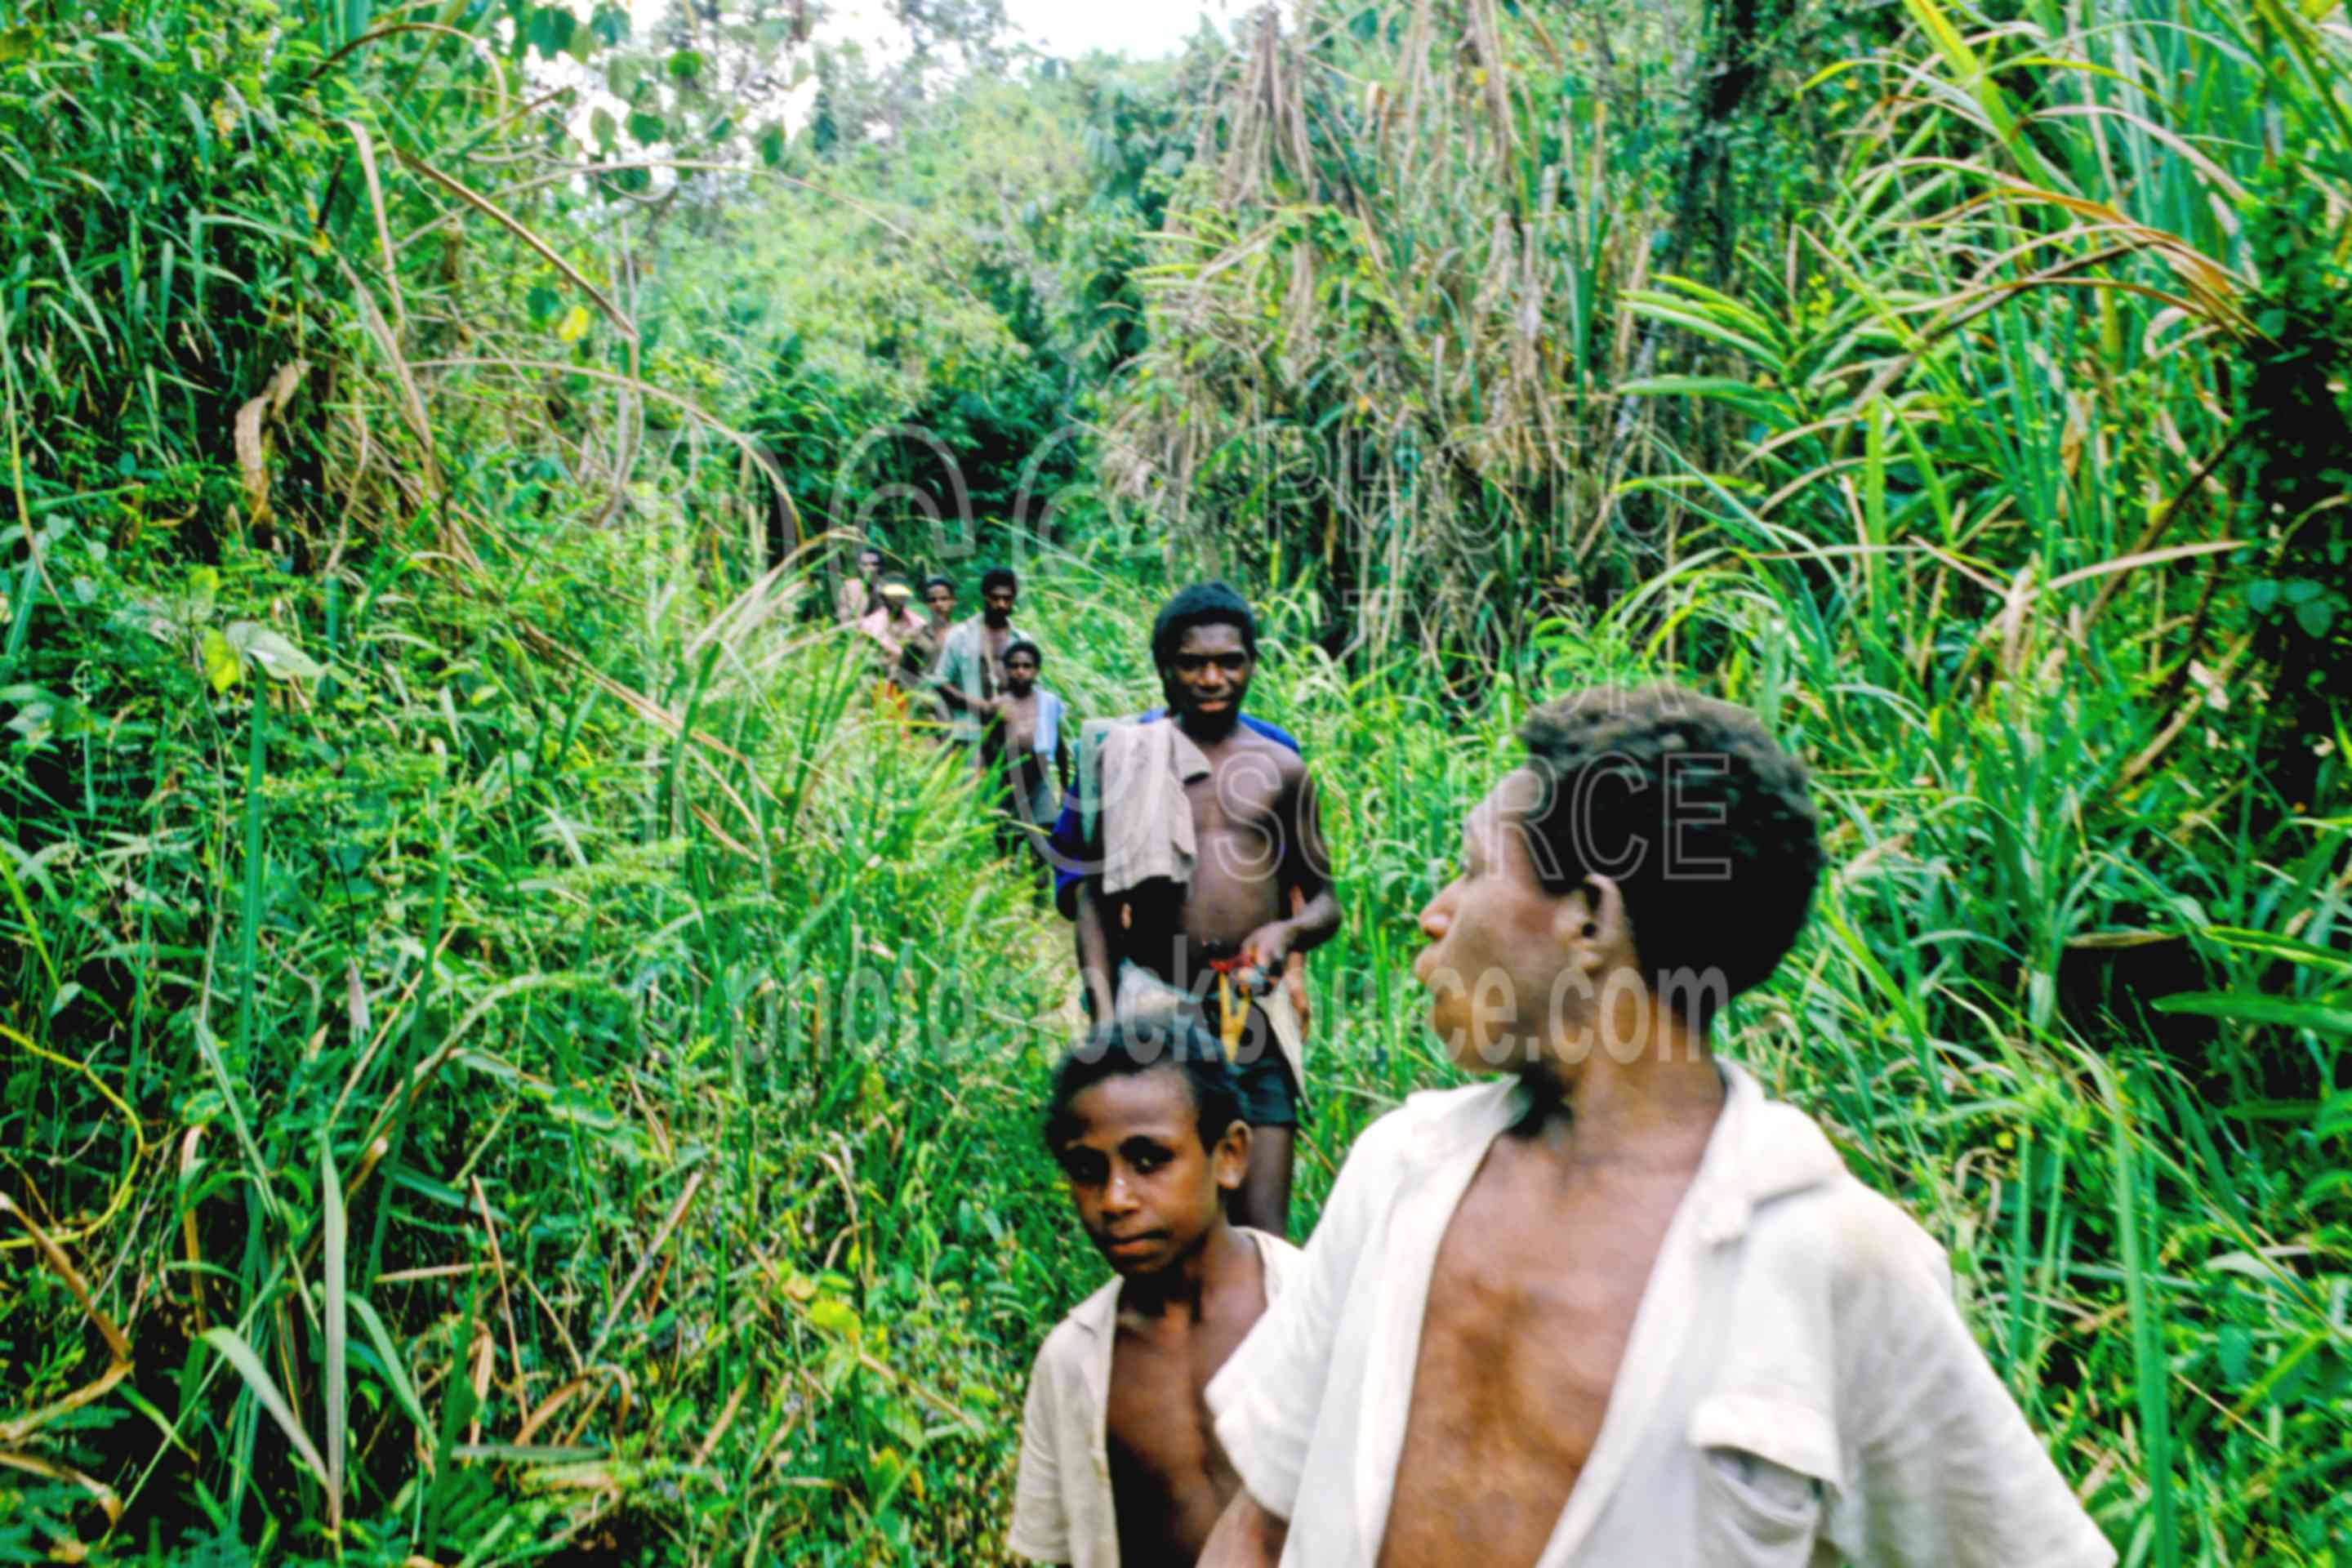 Boys on bush path,boys,bush,jungle,trail,walk,children